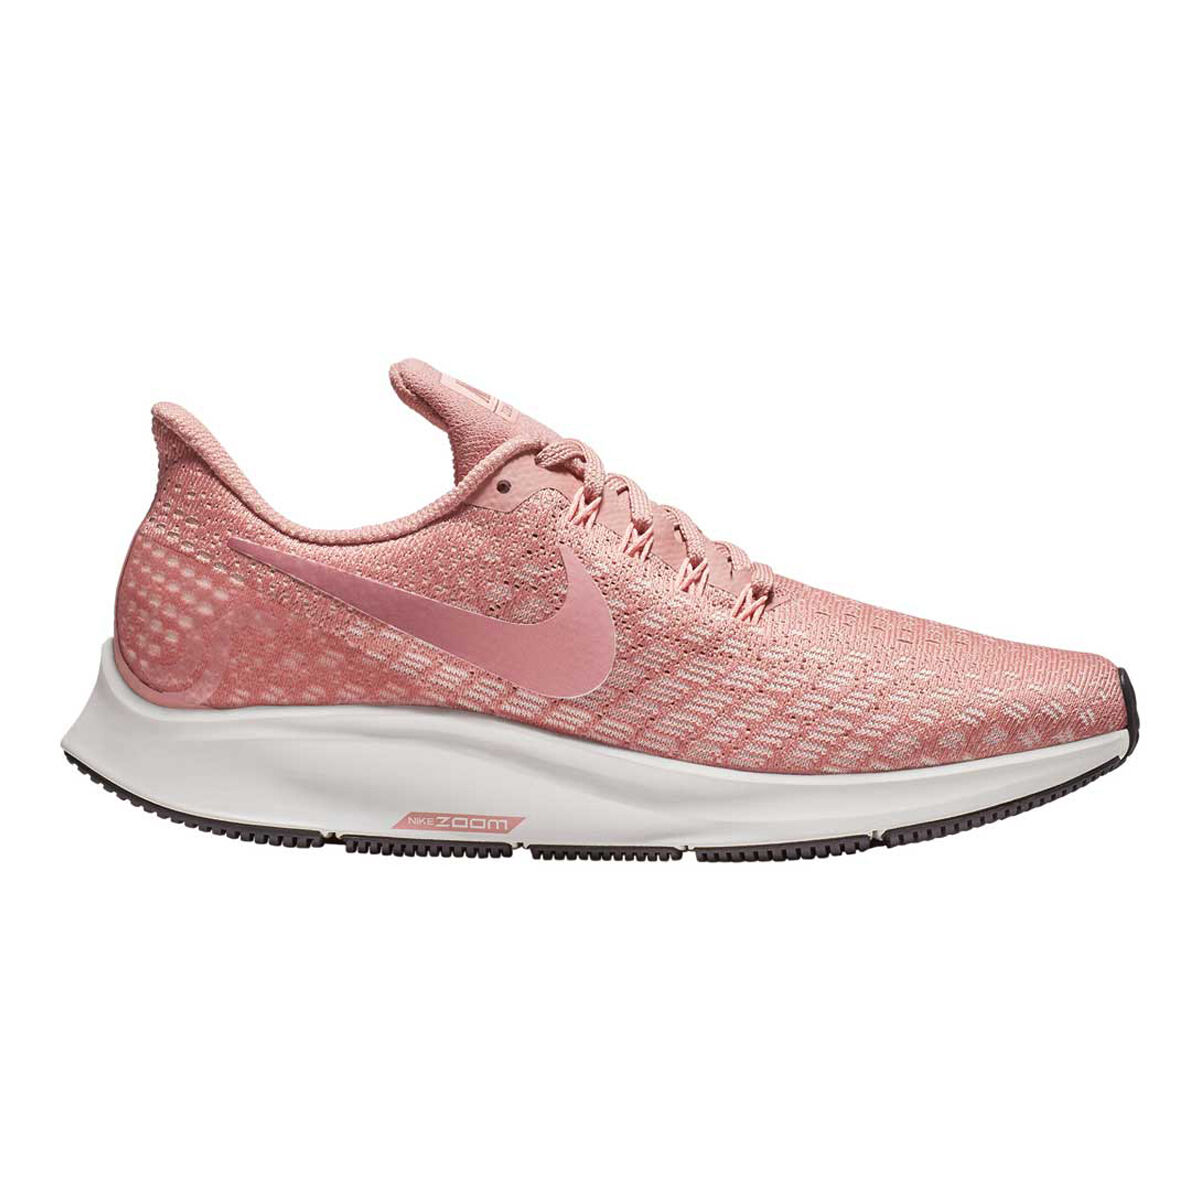 Nike Air Zoom Pegasus 35 Womens Running Shoes